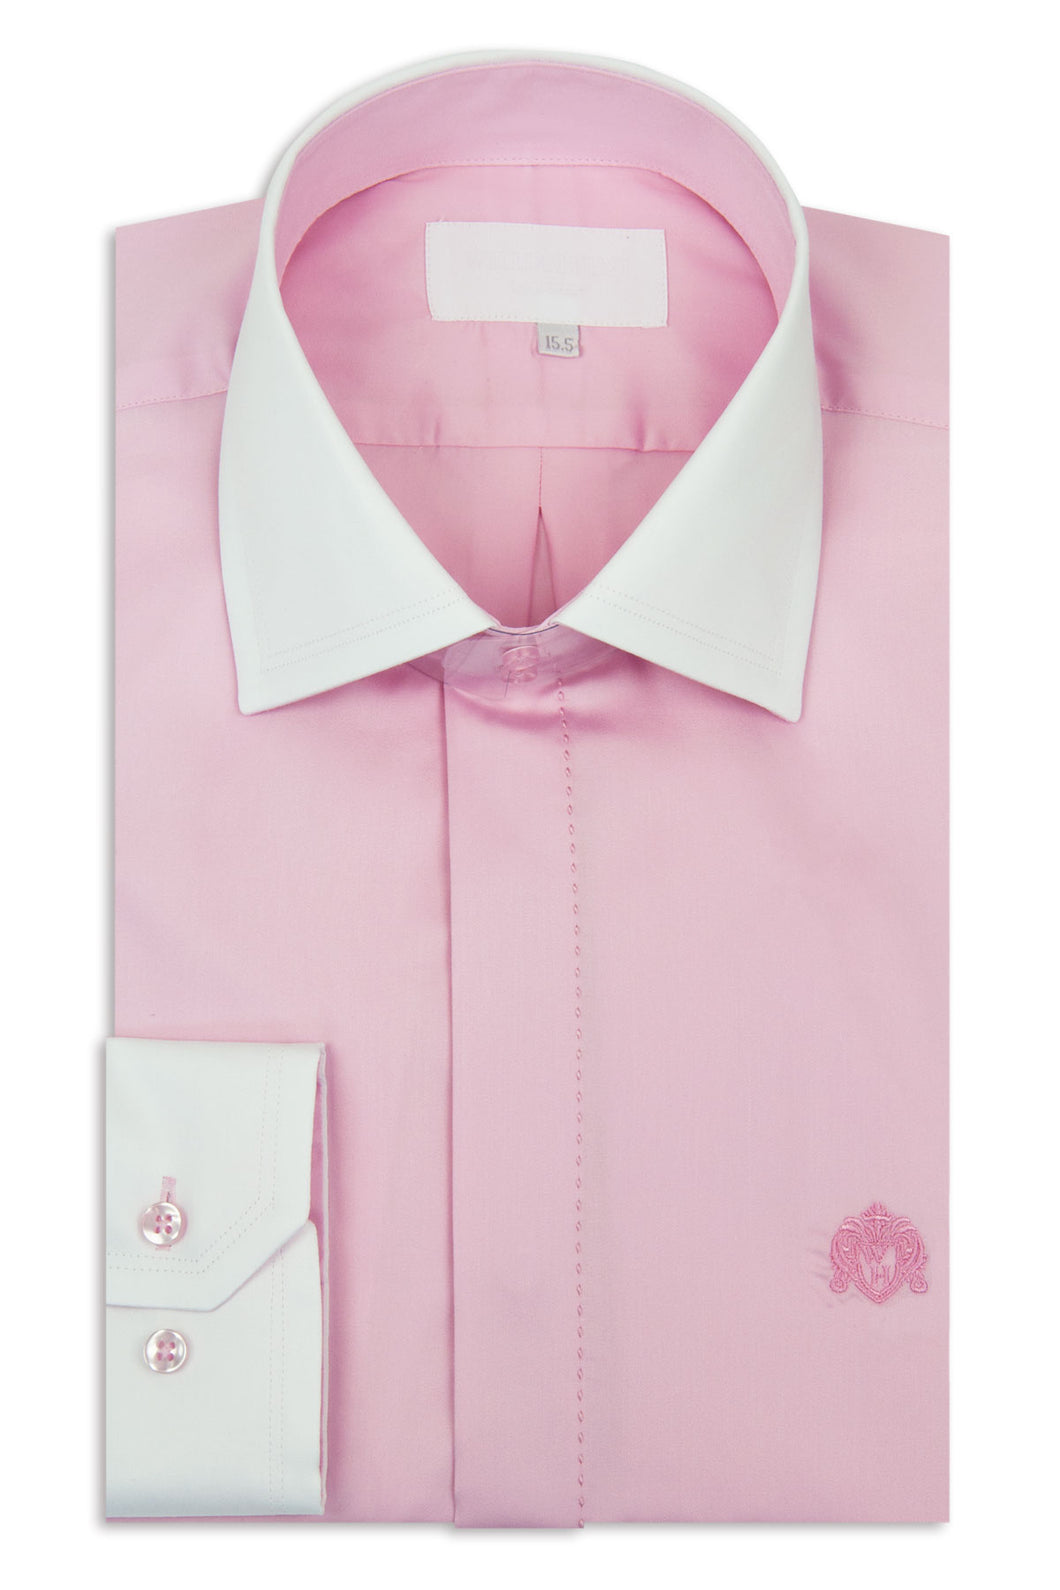 Pink Cutaway Collar Shirt with White Collar